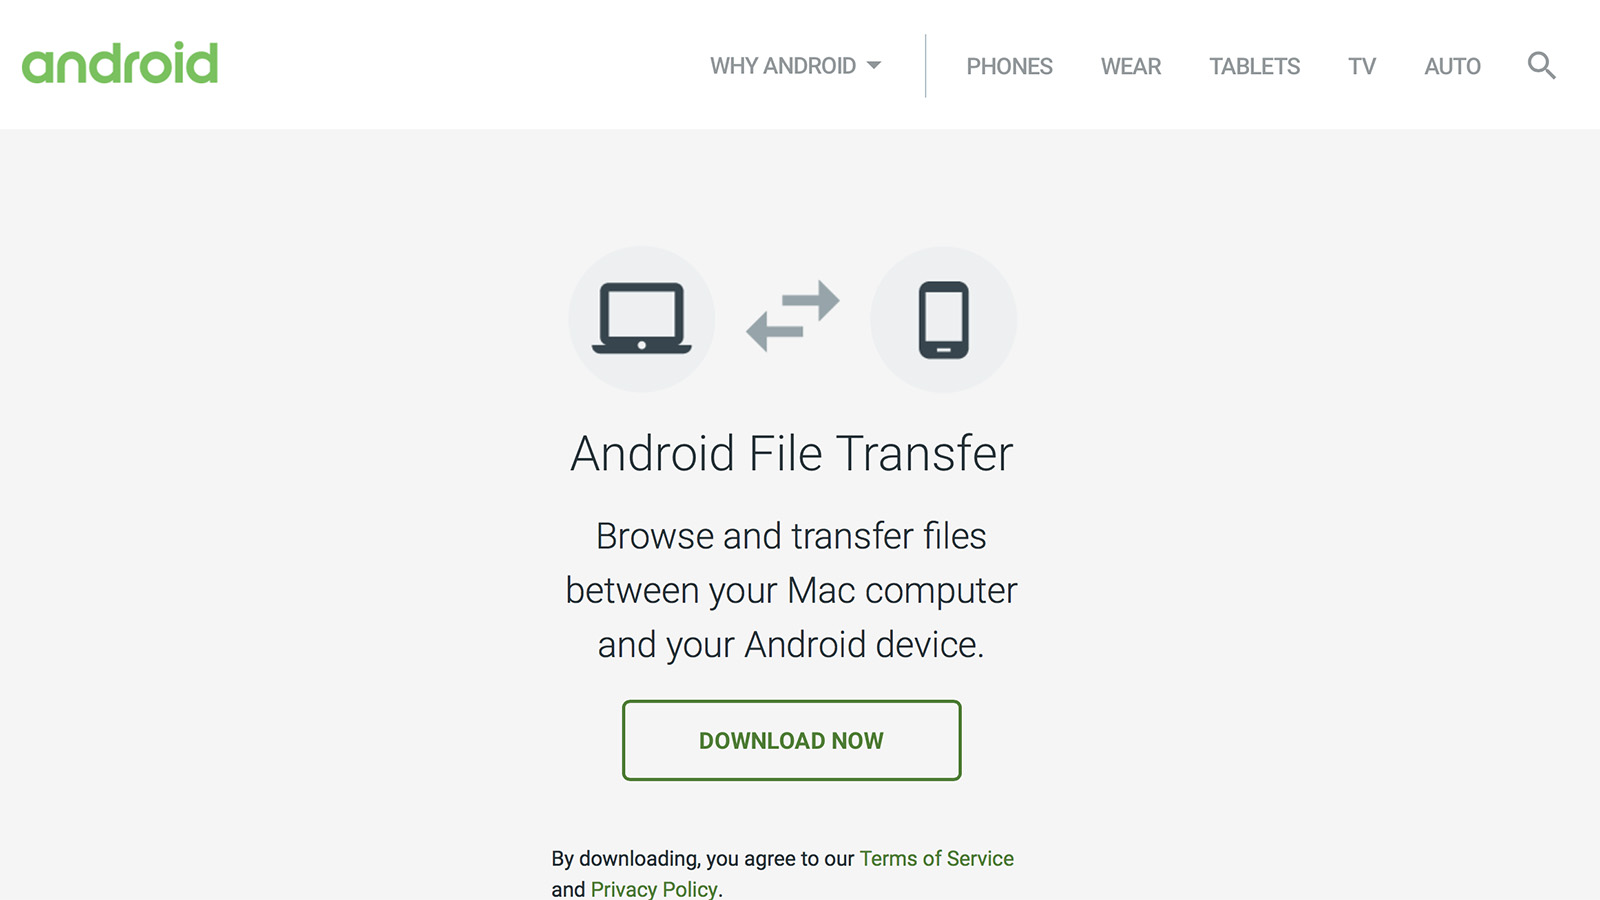 Android File Transfer 配布サイト